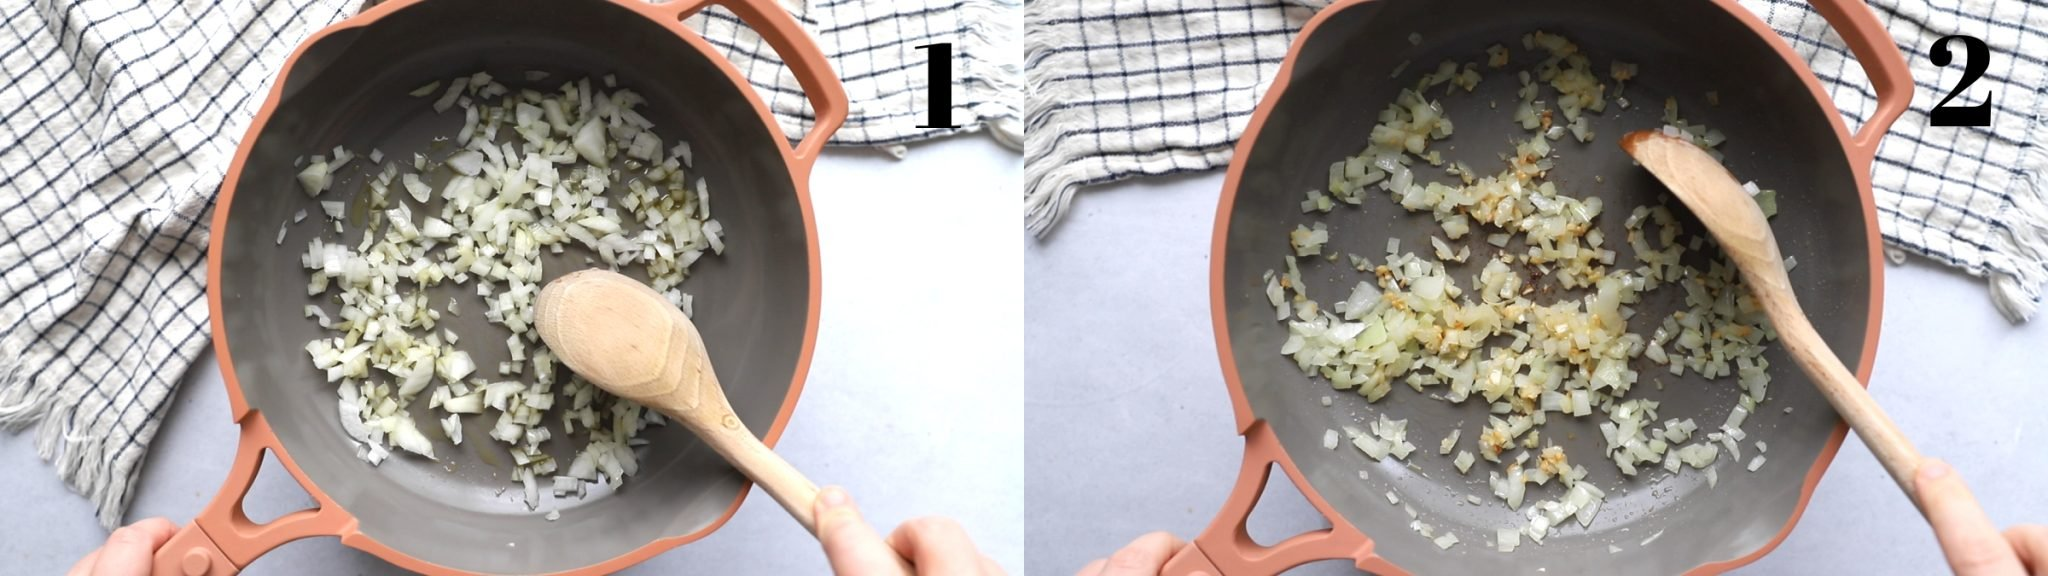 collage image. left image: pink skillet with onion and a wooden spoon in it. Right image: the same skillet with garlic added to the onion